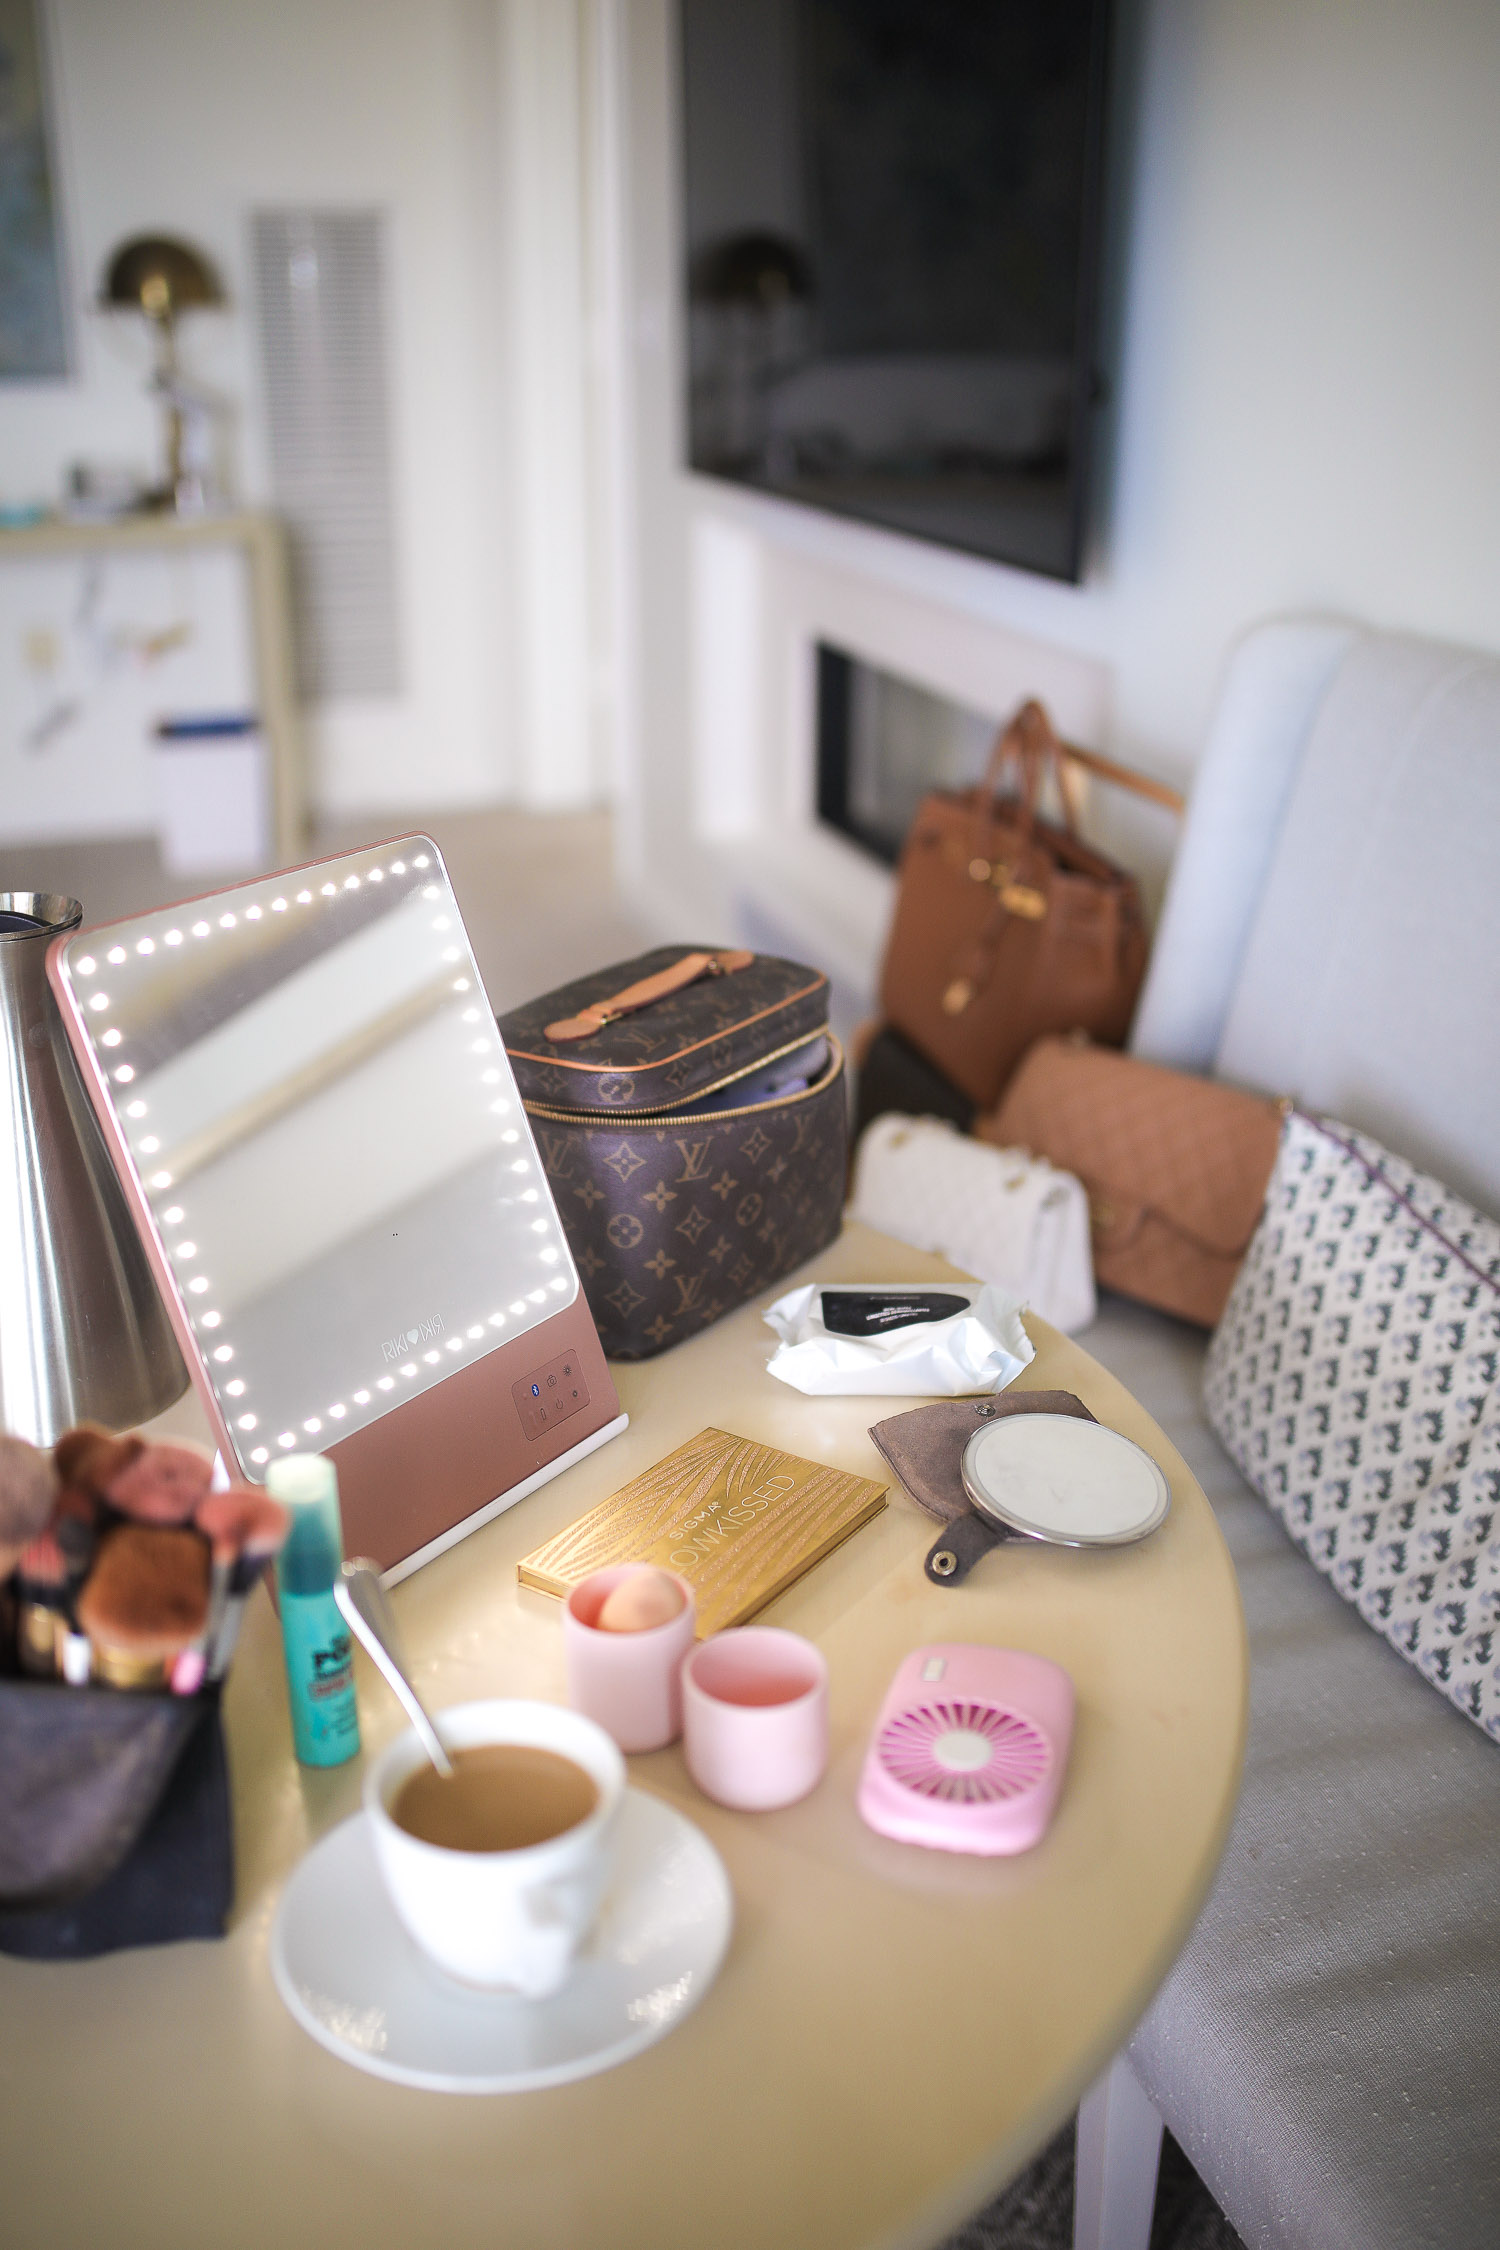 Riki Size Travel Mirror, pink travel fan makeup, beauty sponge holder travel amazon, Louis Vuitton Nice Case, Emily Gemma | Travel Hacks by popular life and style blog, The Sweetest Thing: image of a makeup mirror, Louis Vuitton makeup bag, makeup brush holder, cup of coffee, portable hand fan, beauty blender, and makeup pallet.